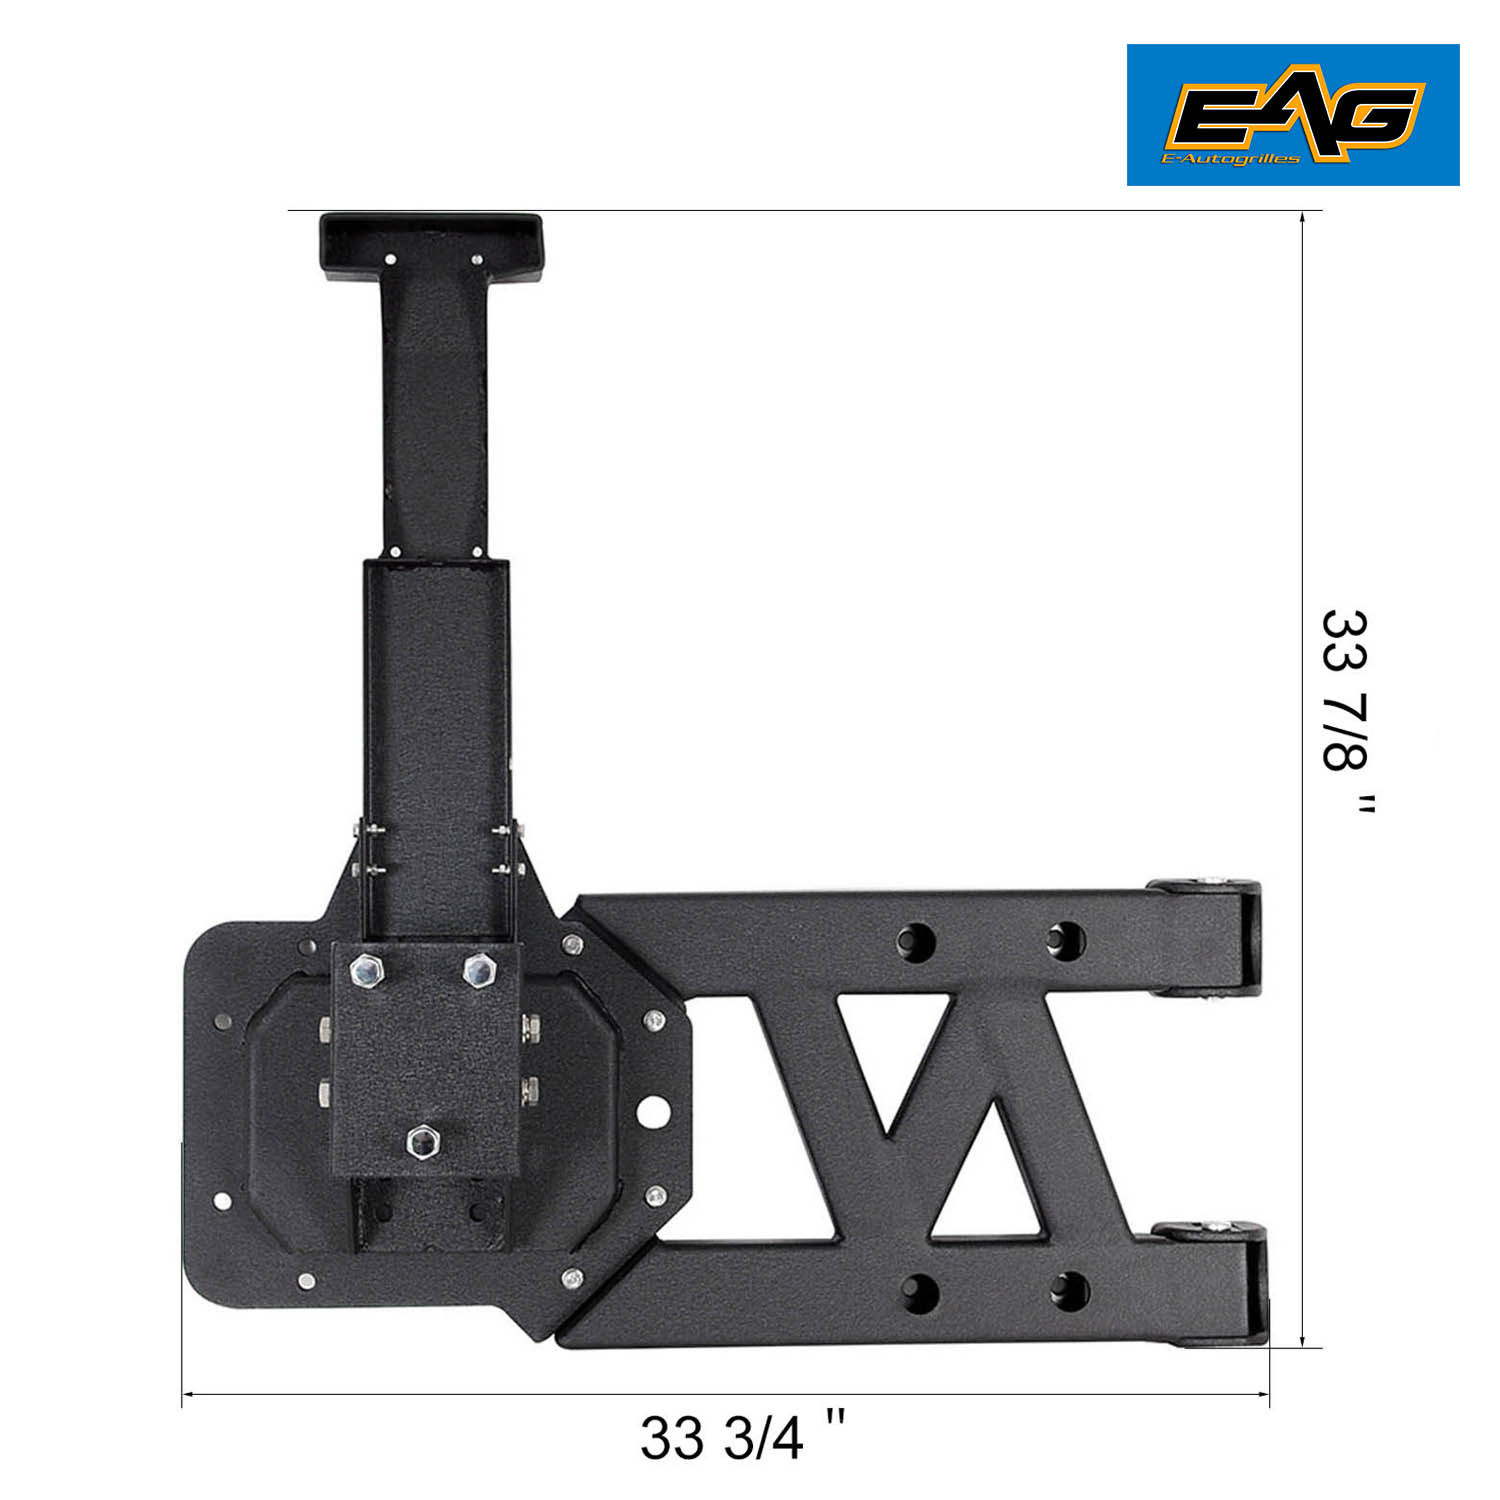 Eag Cold Rolled Steel Heavyduty Hinged Tire Carrier For 07